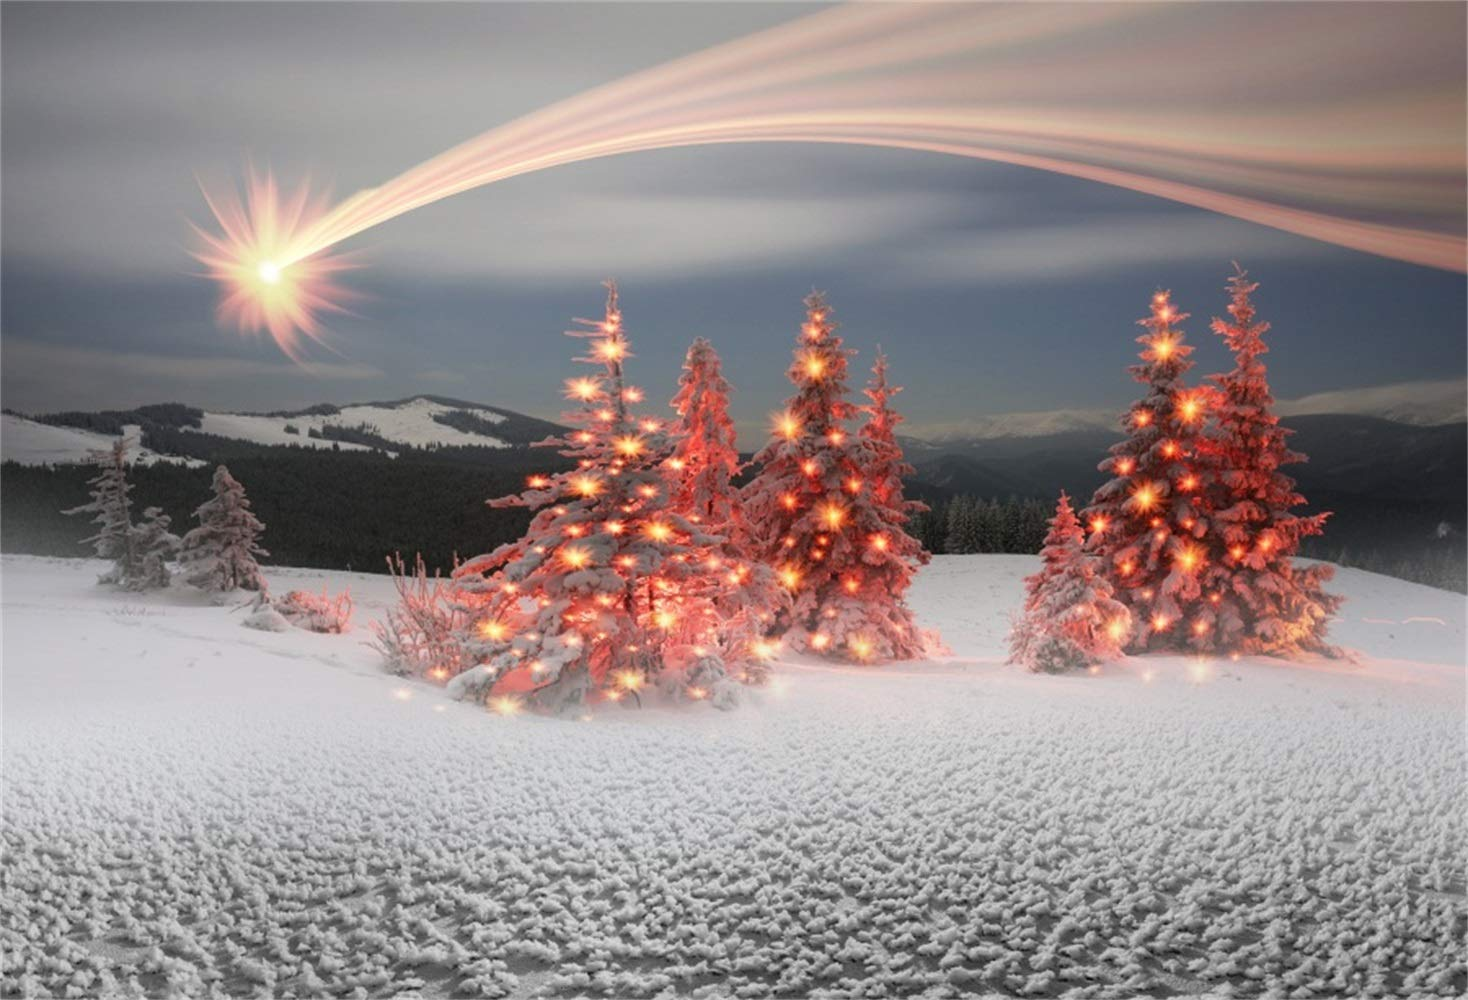 Laeacco Christmas New Year Backdrop Vinyl 7x5ft Dazzling Meteor Snowy Remote Mountains Pine Forest Shiny Xmas Trees White Snowfield Background New Year's Eve Party Banner Child Baby Adult Shoot